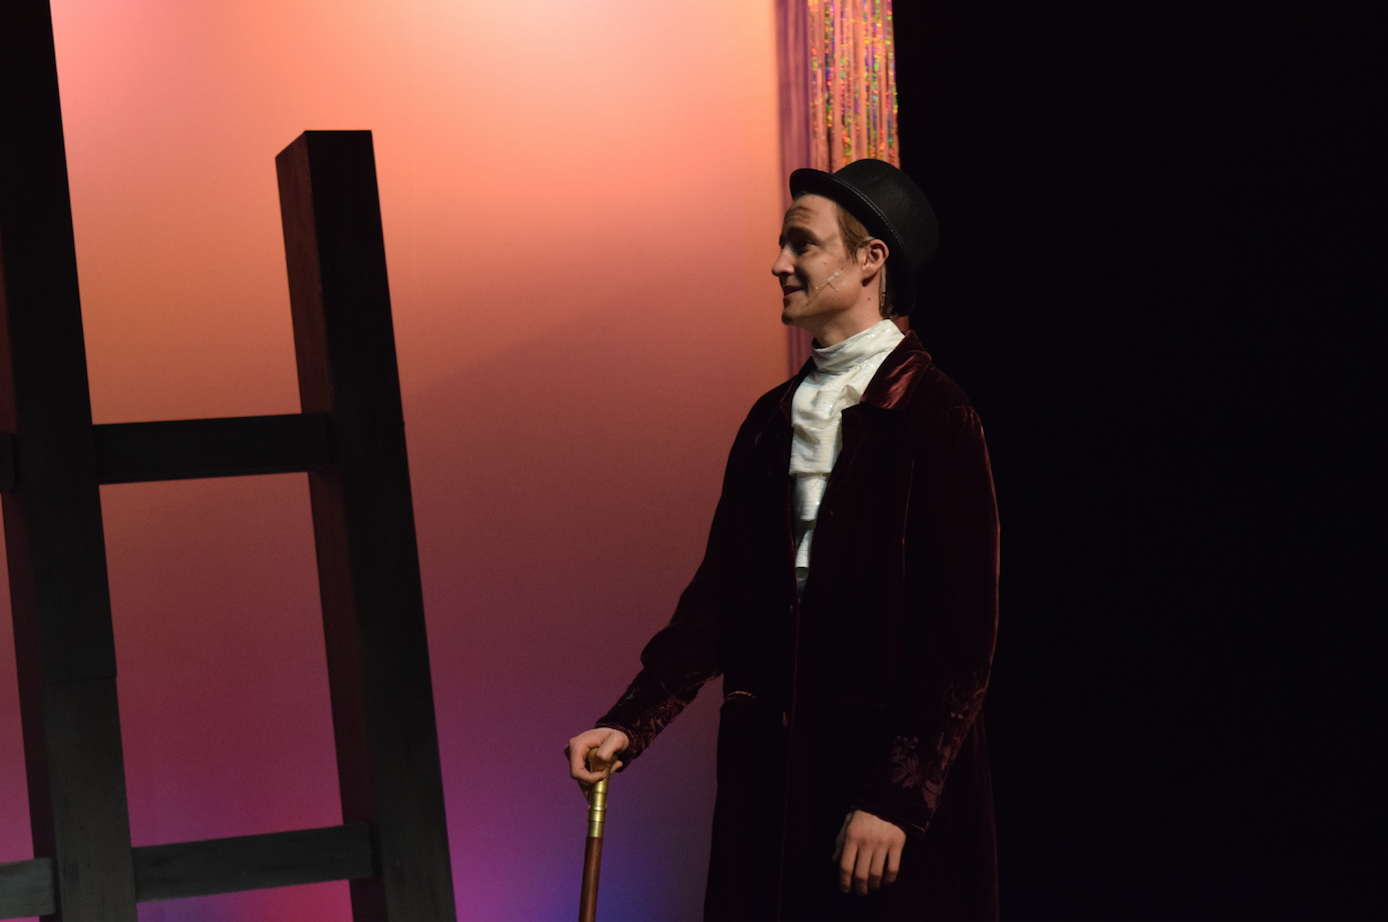 Senior Ben Pribe looks over at senior Jeremi Kalkowski in a scene of the Little Mermaid, the musical this past spring. Pribe played Grimsby, a character that oversaw and mentored Prince Eric, Kalkowski's character. PHOTO | ILENA PENG